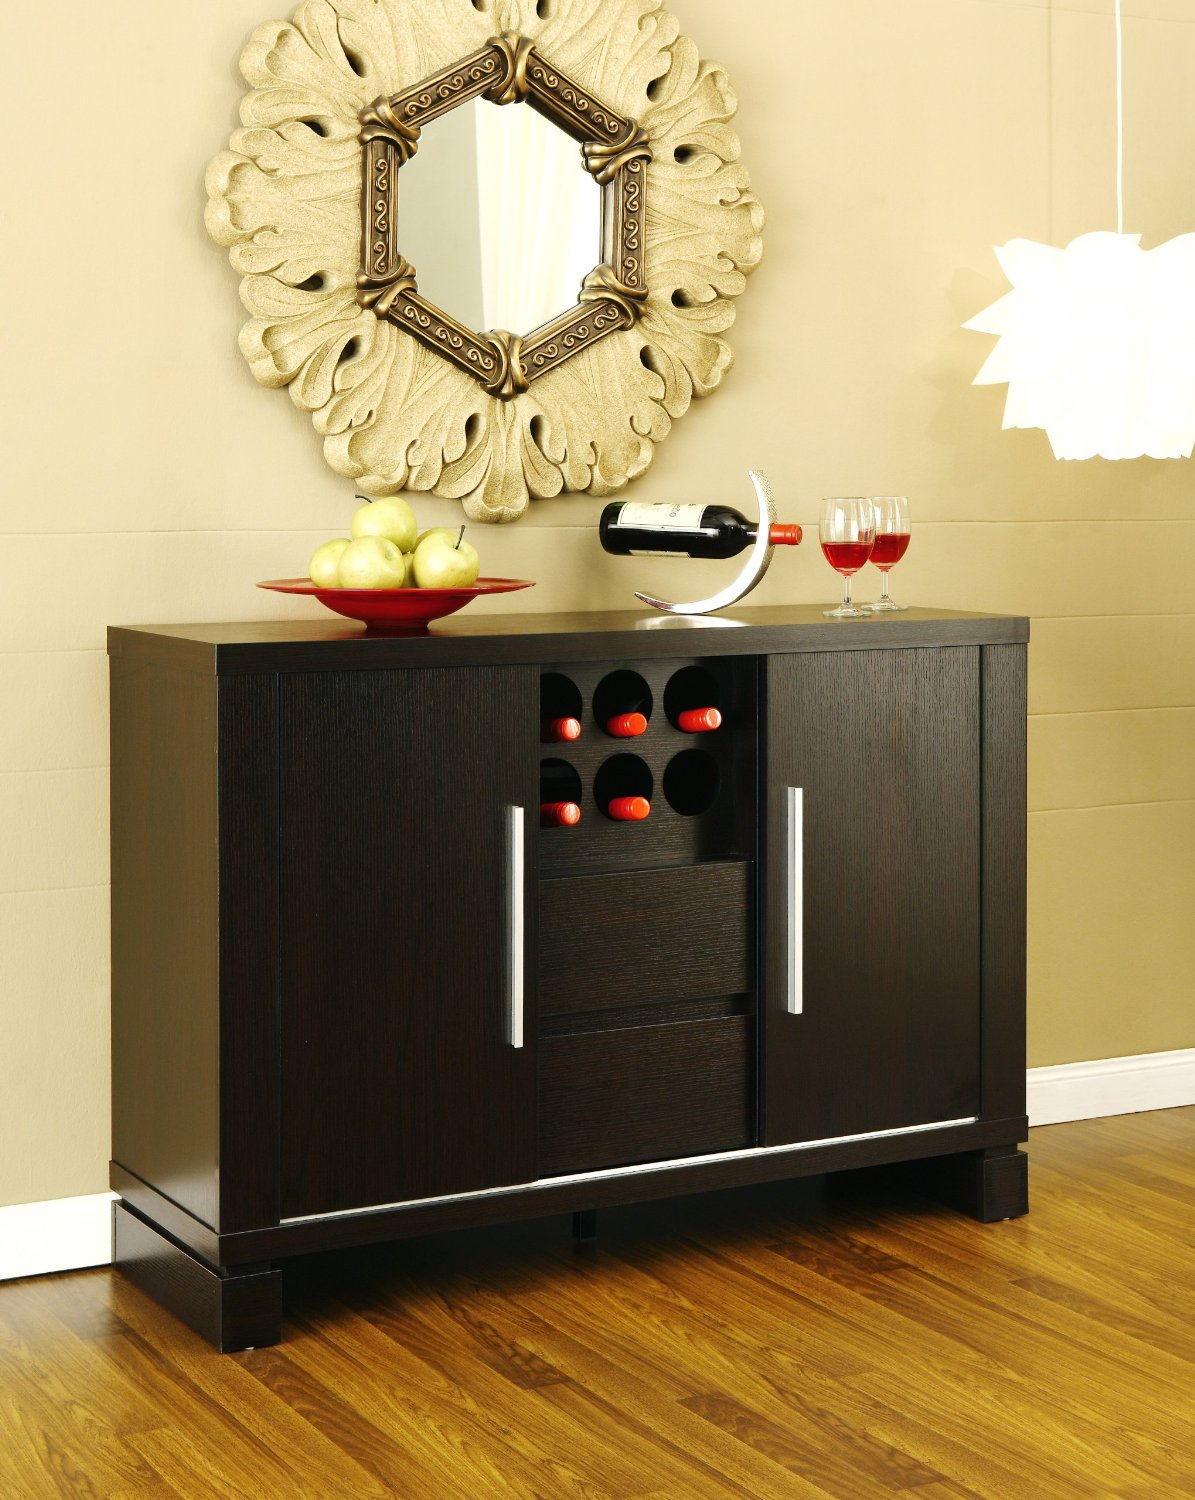 Kitchen Server Furniture The Difference Among Sideboard Buffet Credenza And Server